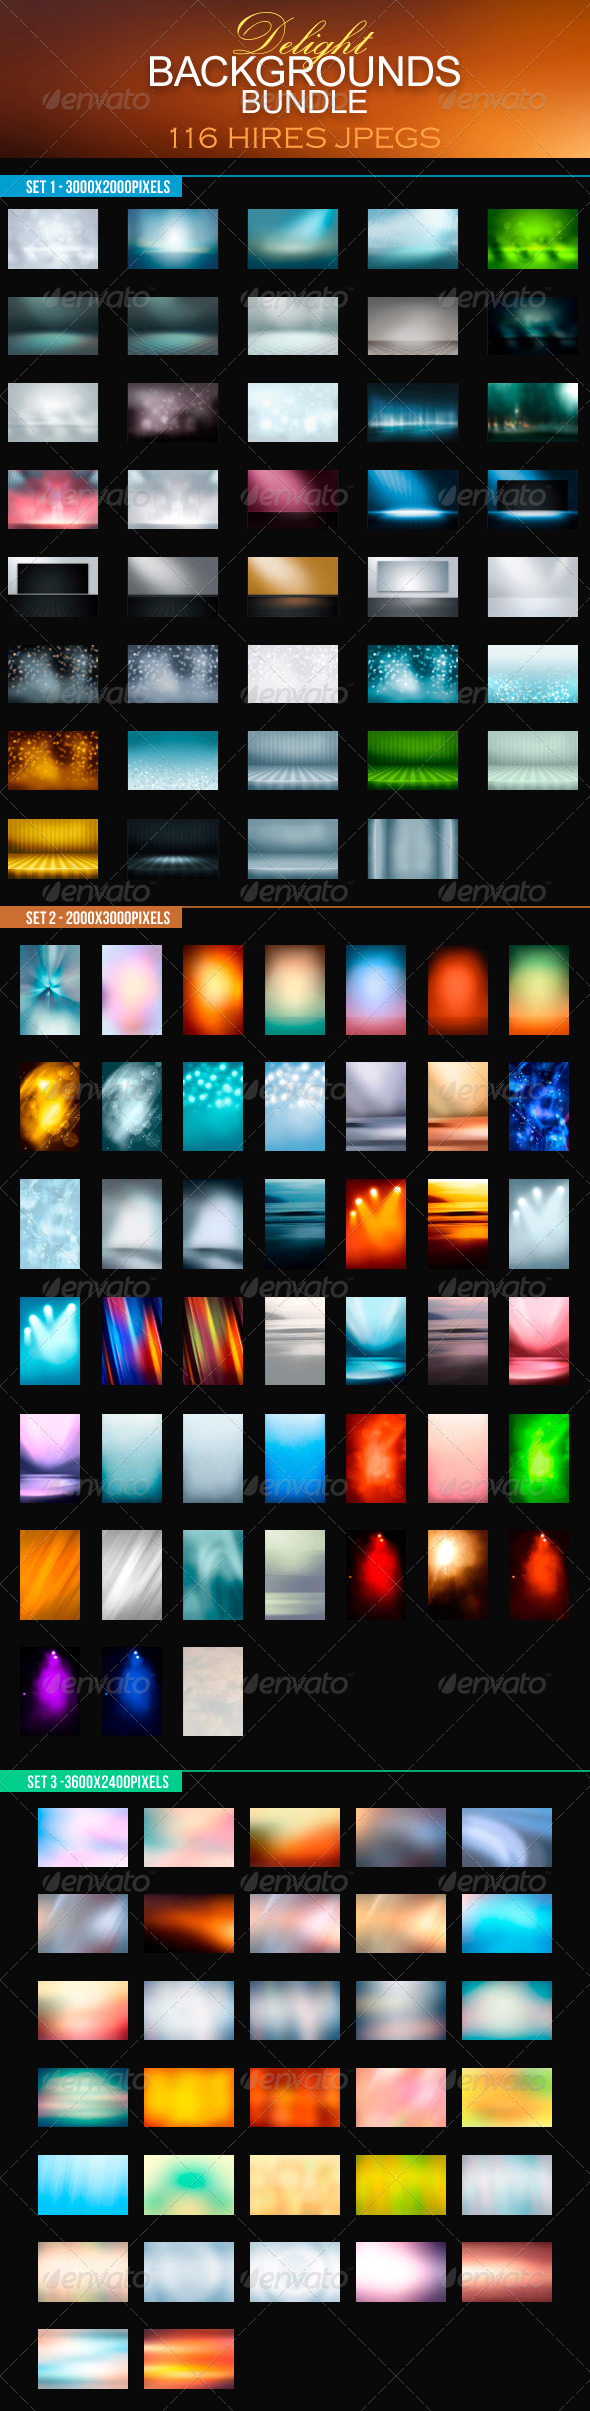 Delight Backgrounds Bundle - Backgrounds Graphics